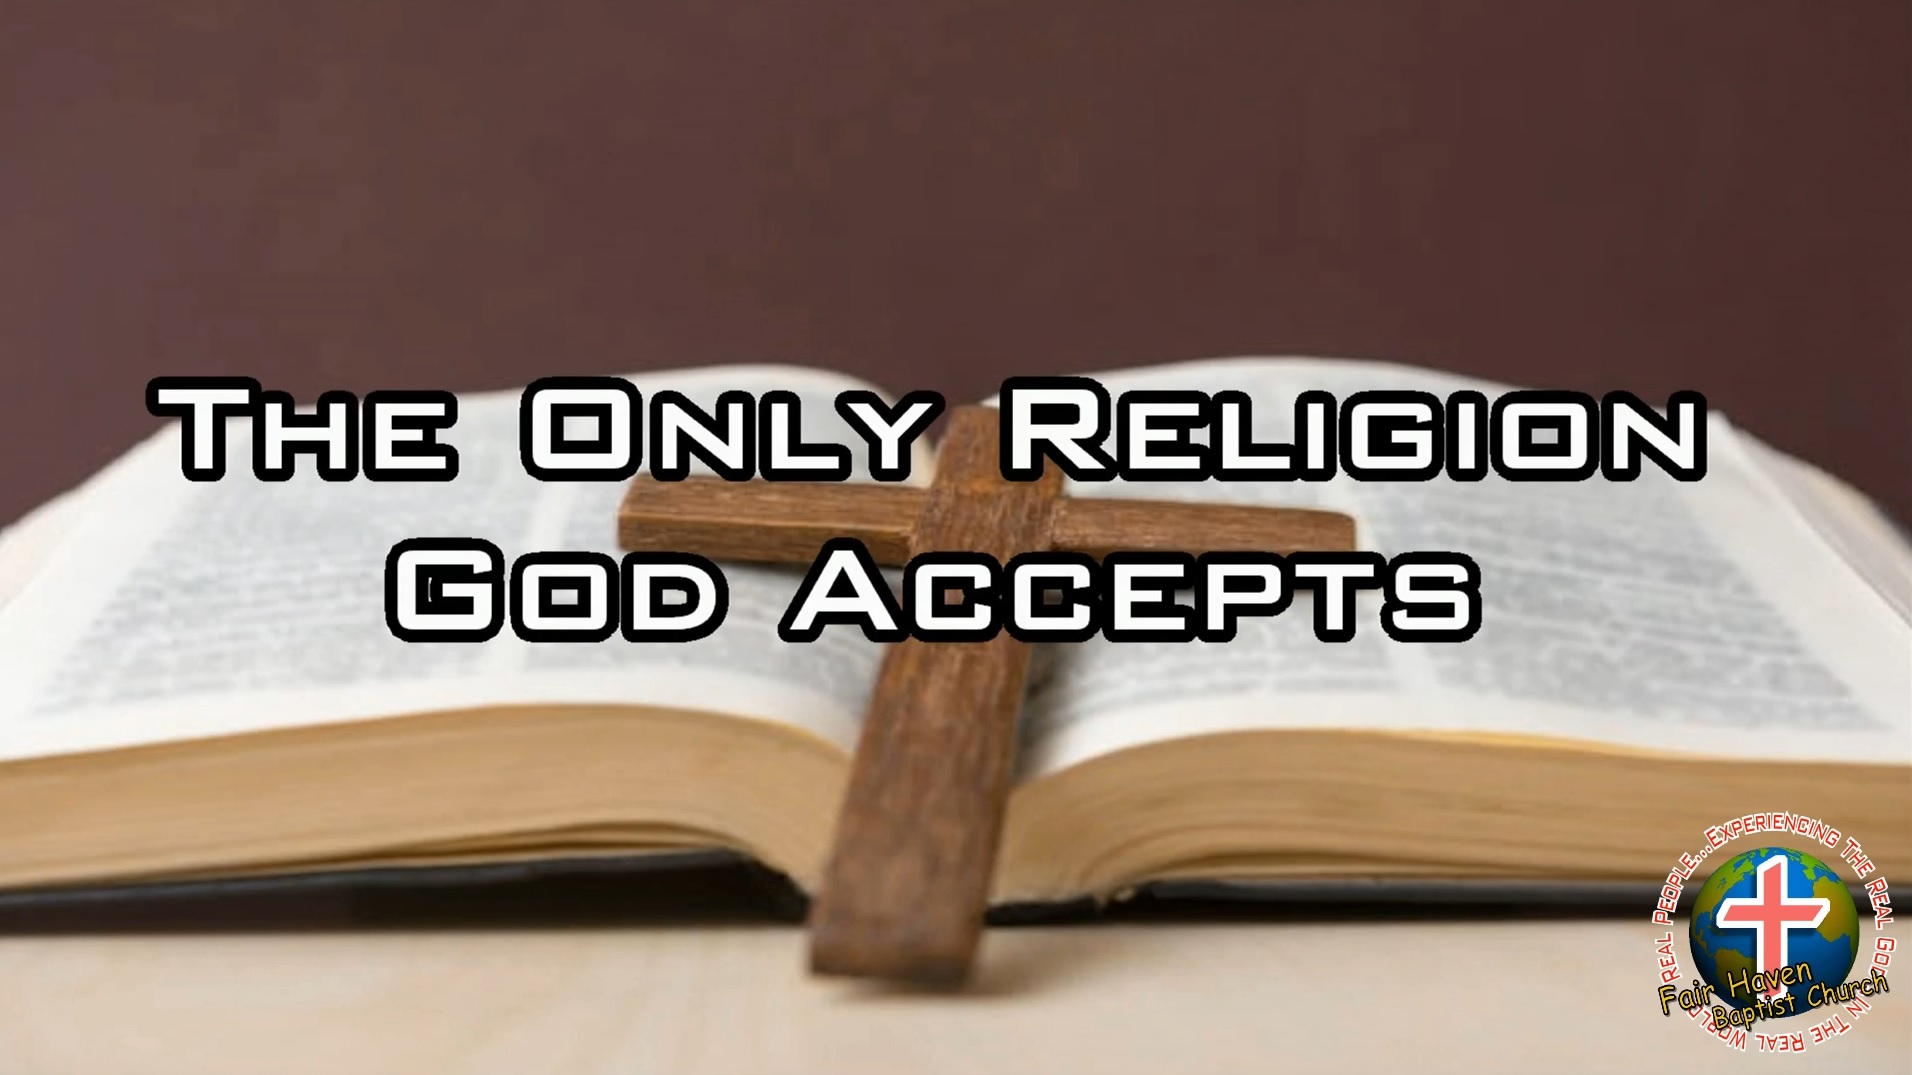 The Only Religion God Accepts